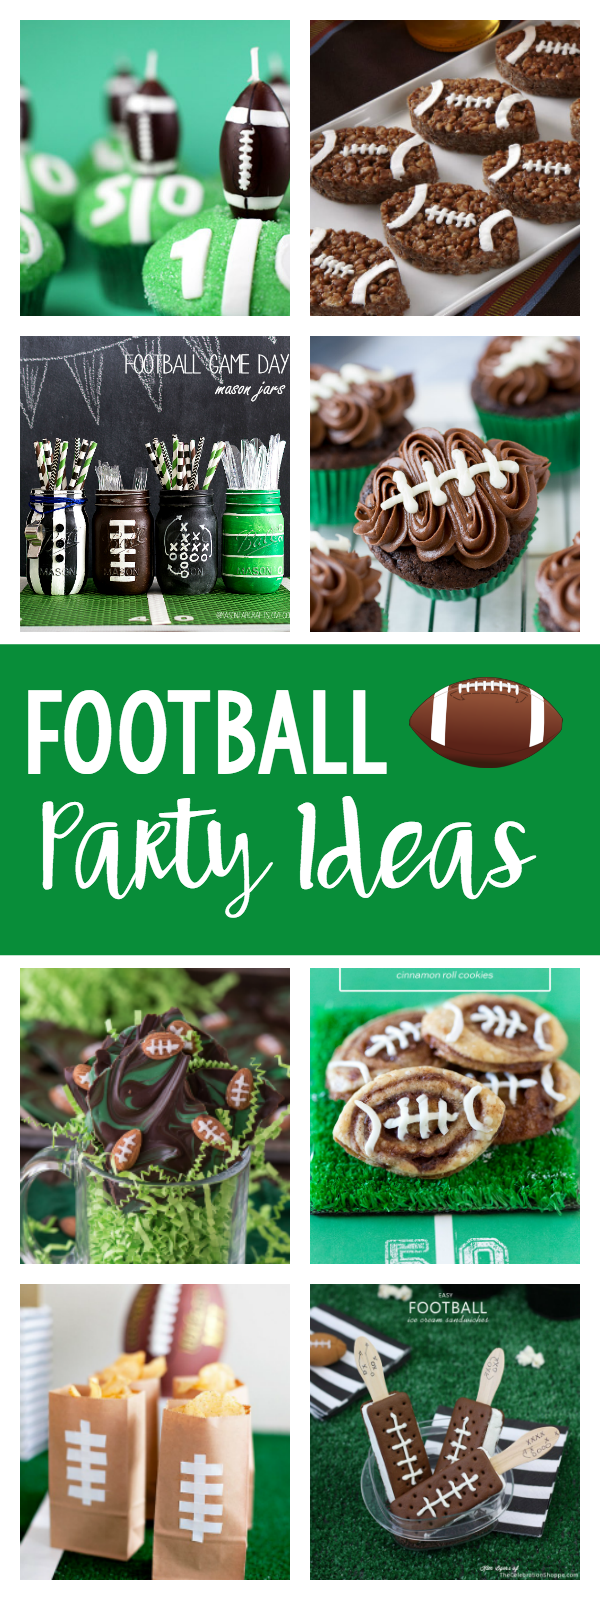 Football Party Ideas-Everything you need to throw a great football party, from food to favors, decorations to game ideas. #football #footballparty #superbowl #superbowlparty #footballfood